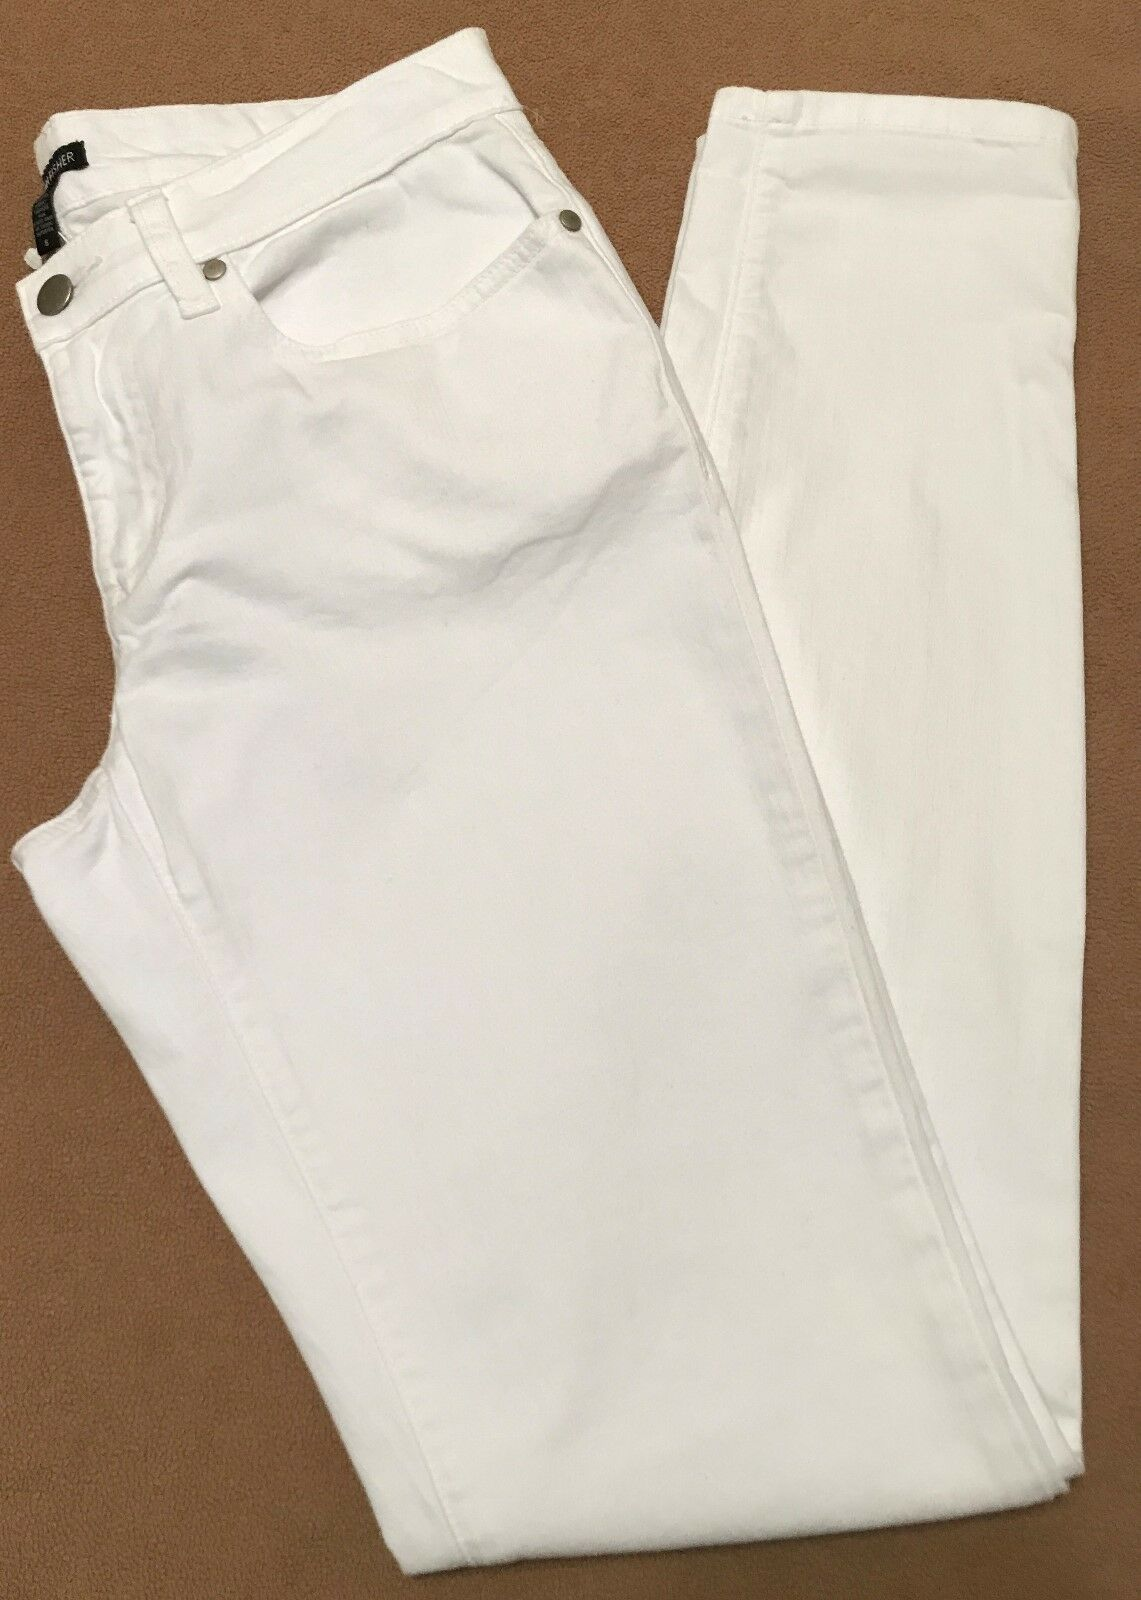 Eileen Fisher White Jeans Size 6 or 10 NWT Skinny Organic Cotton Stretch Denim